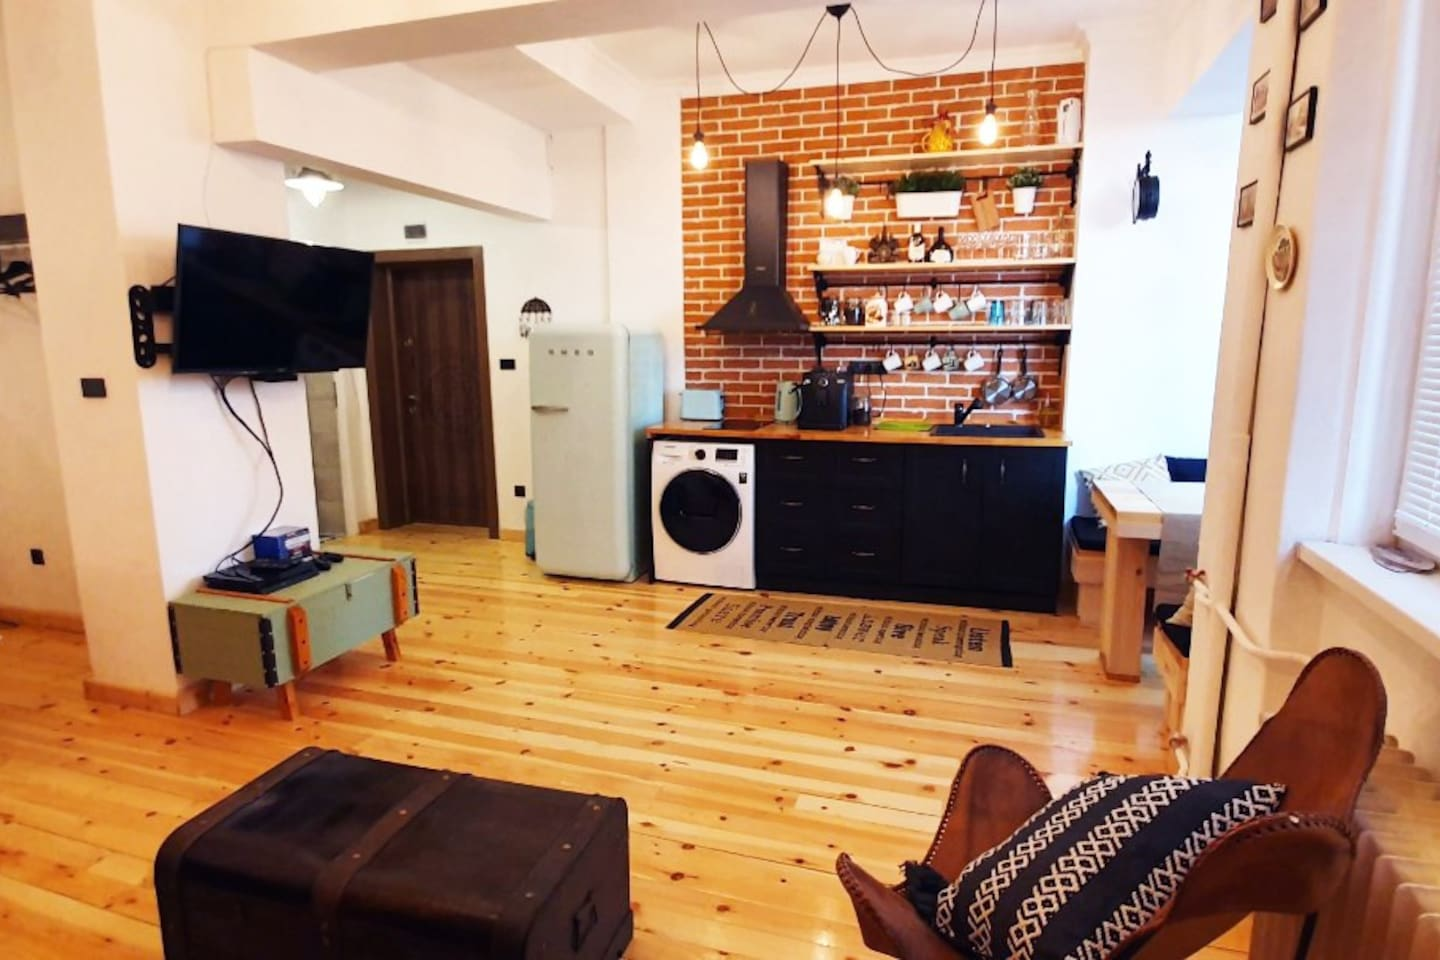 This is your place for quiet rest, work or entertainment right in the middle of where it is in Sofia - only steps from Vitosha blvd yet far enough for a quiet nights' sleep.